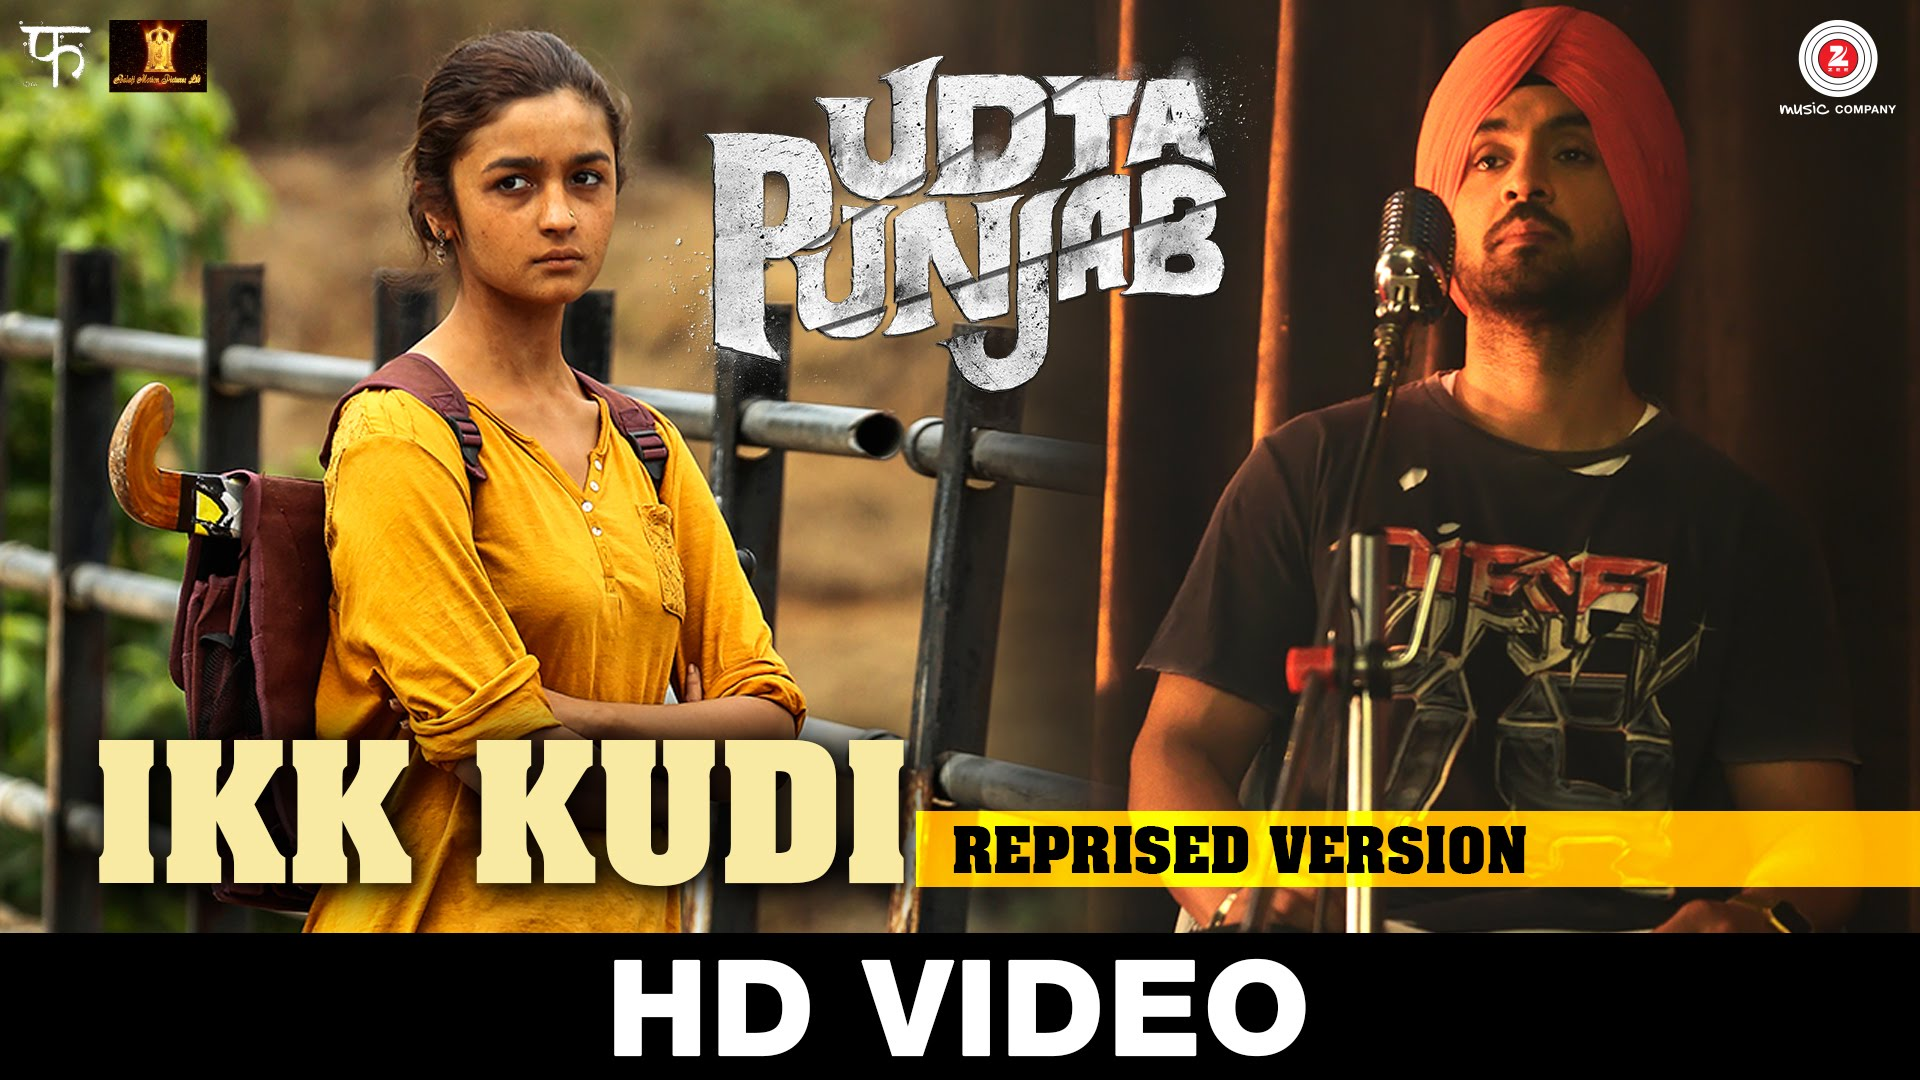 Diljit Doshanjh's voice and Alia Bhatt's story in Ikk Kudi will win over your hearts!